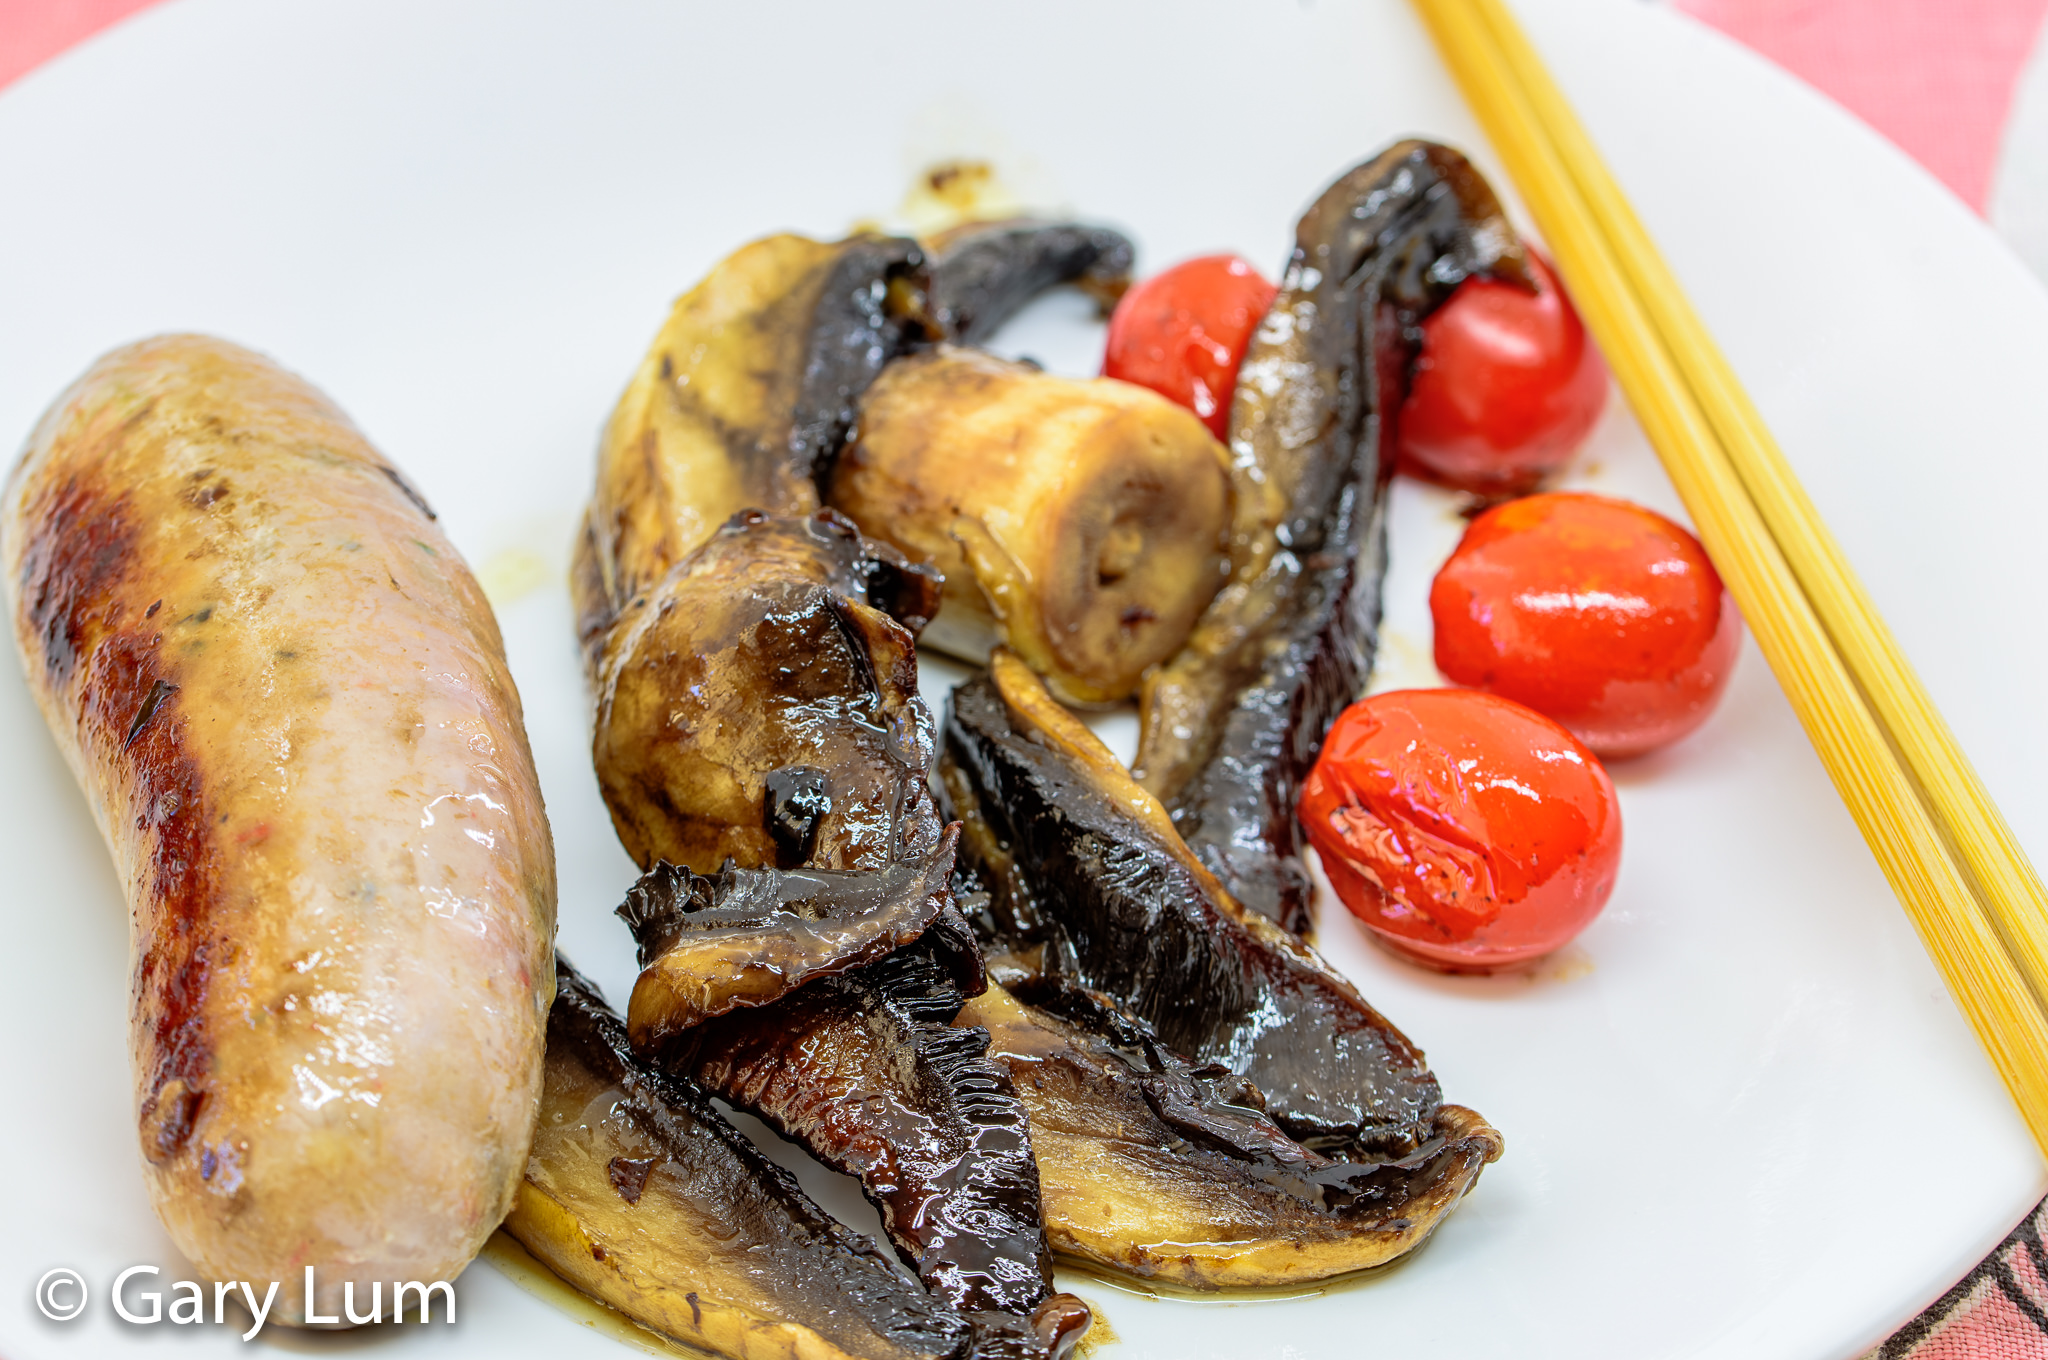 Close up. Pork sausage with mushroom and cherry tomatoes. Gary Lum.